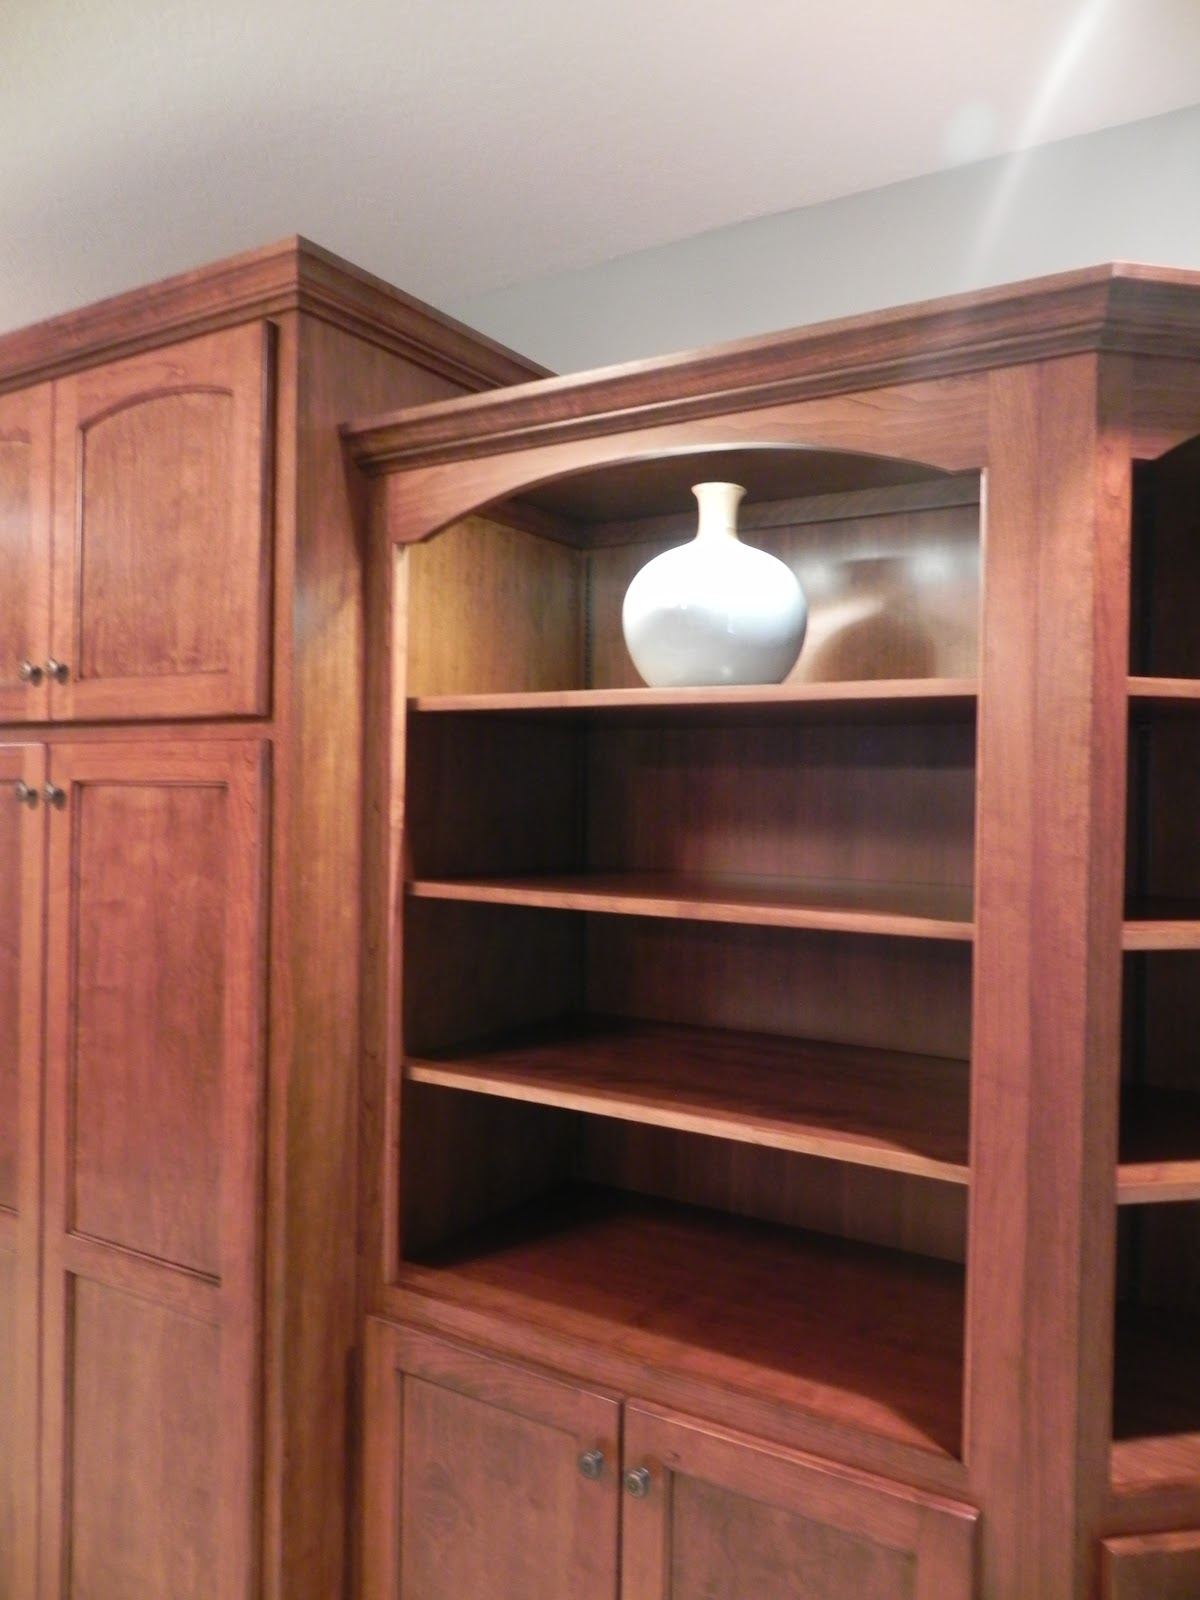 Alder Cabinets Kitchen Handmade Sinks Adkisson 39s Cherry Bookcases And Wood